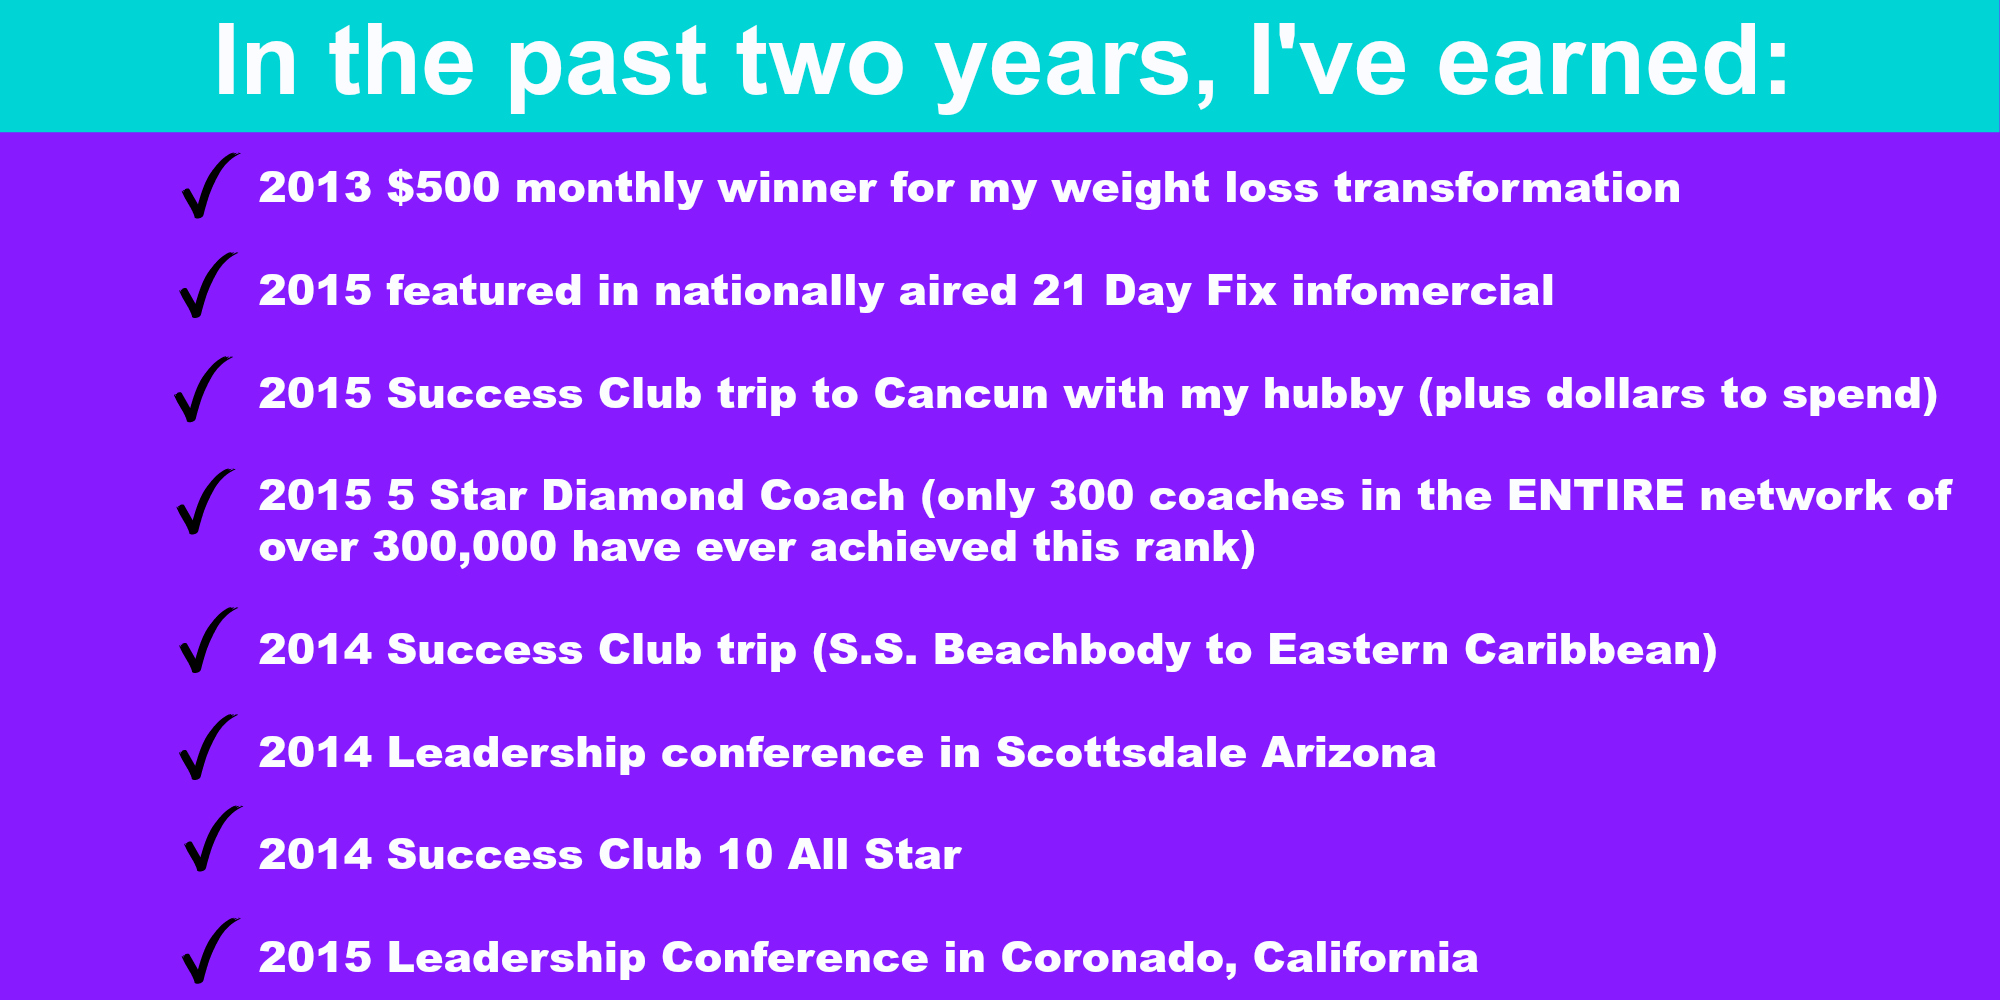 in the past two years I've earned